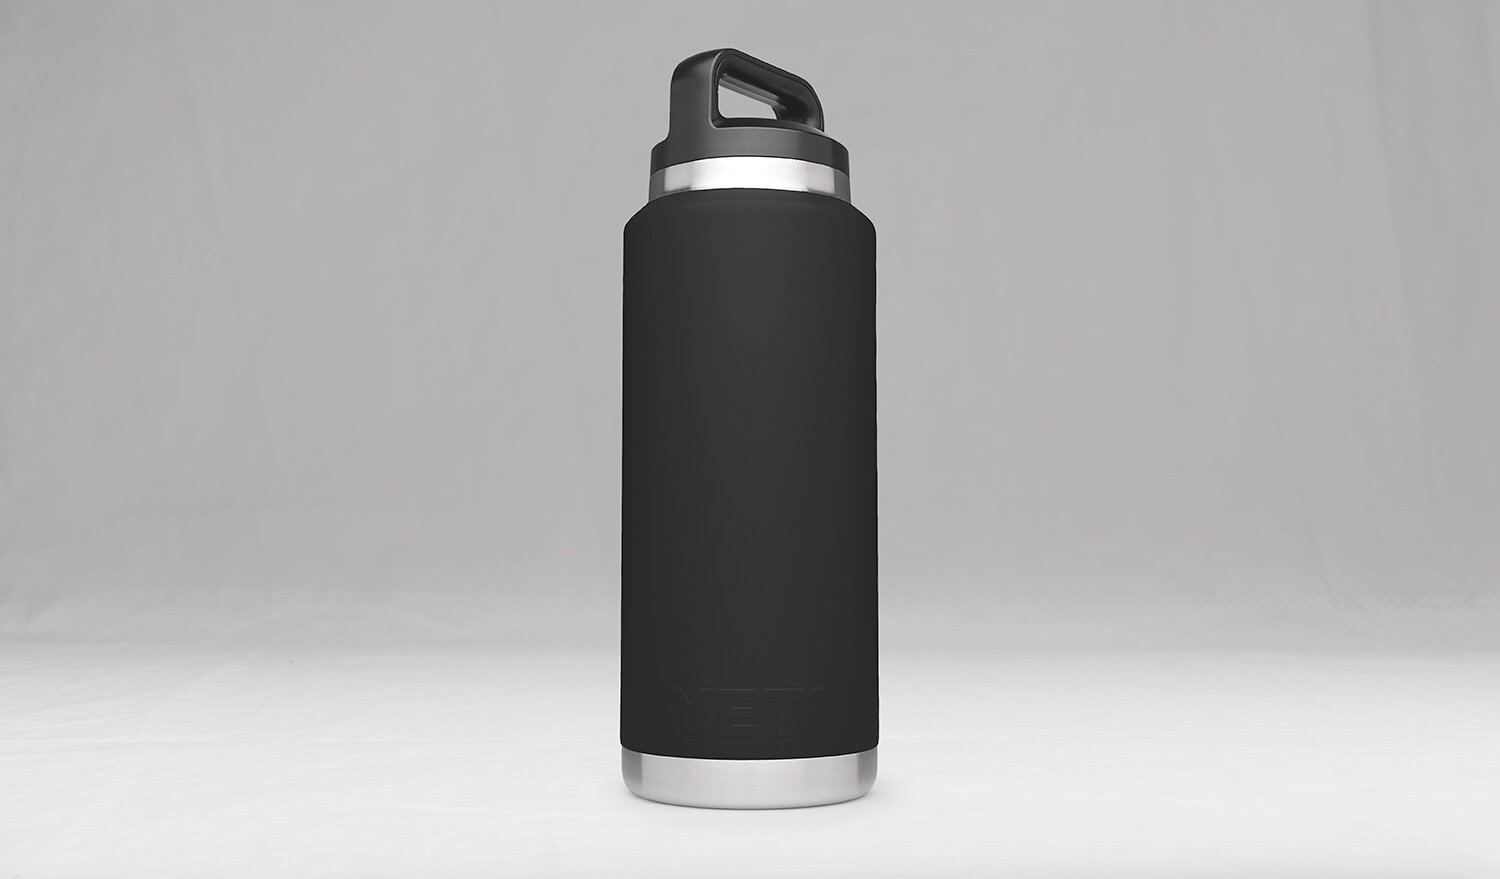 238ee205247 Amazon.com: YETI Rambler 36oz Vacuum Insulated Stainless Steel Bottle with  Cap (Stainless Steel) (Black): Sports & Outdoors